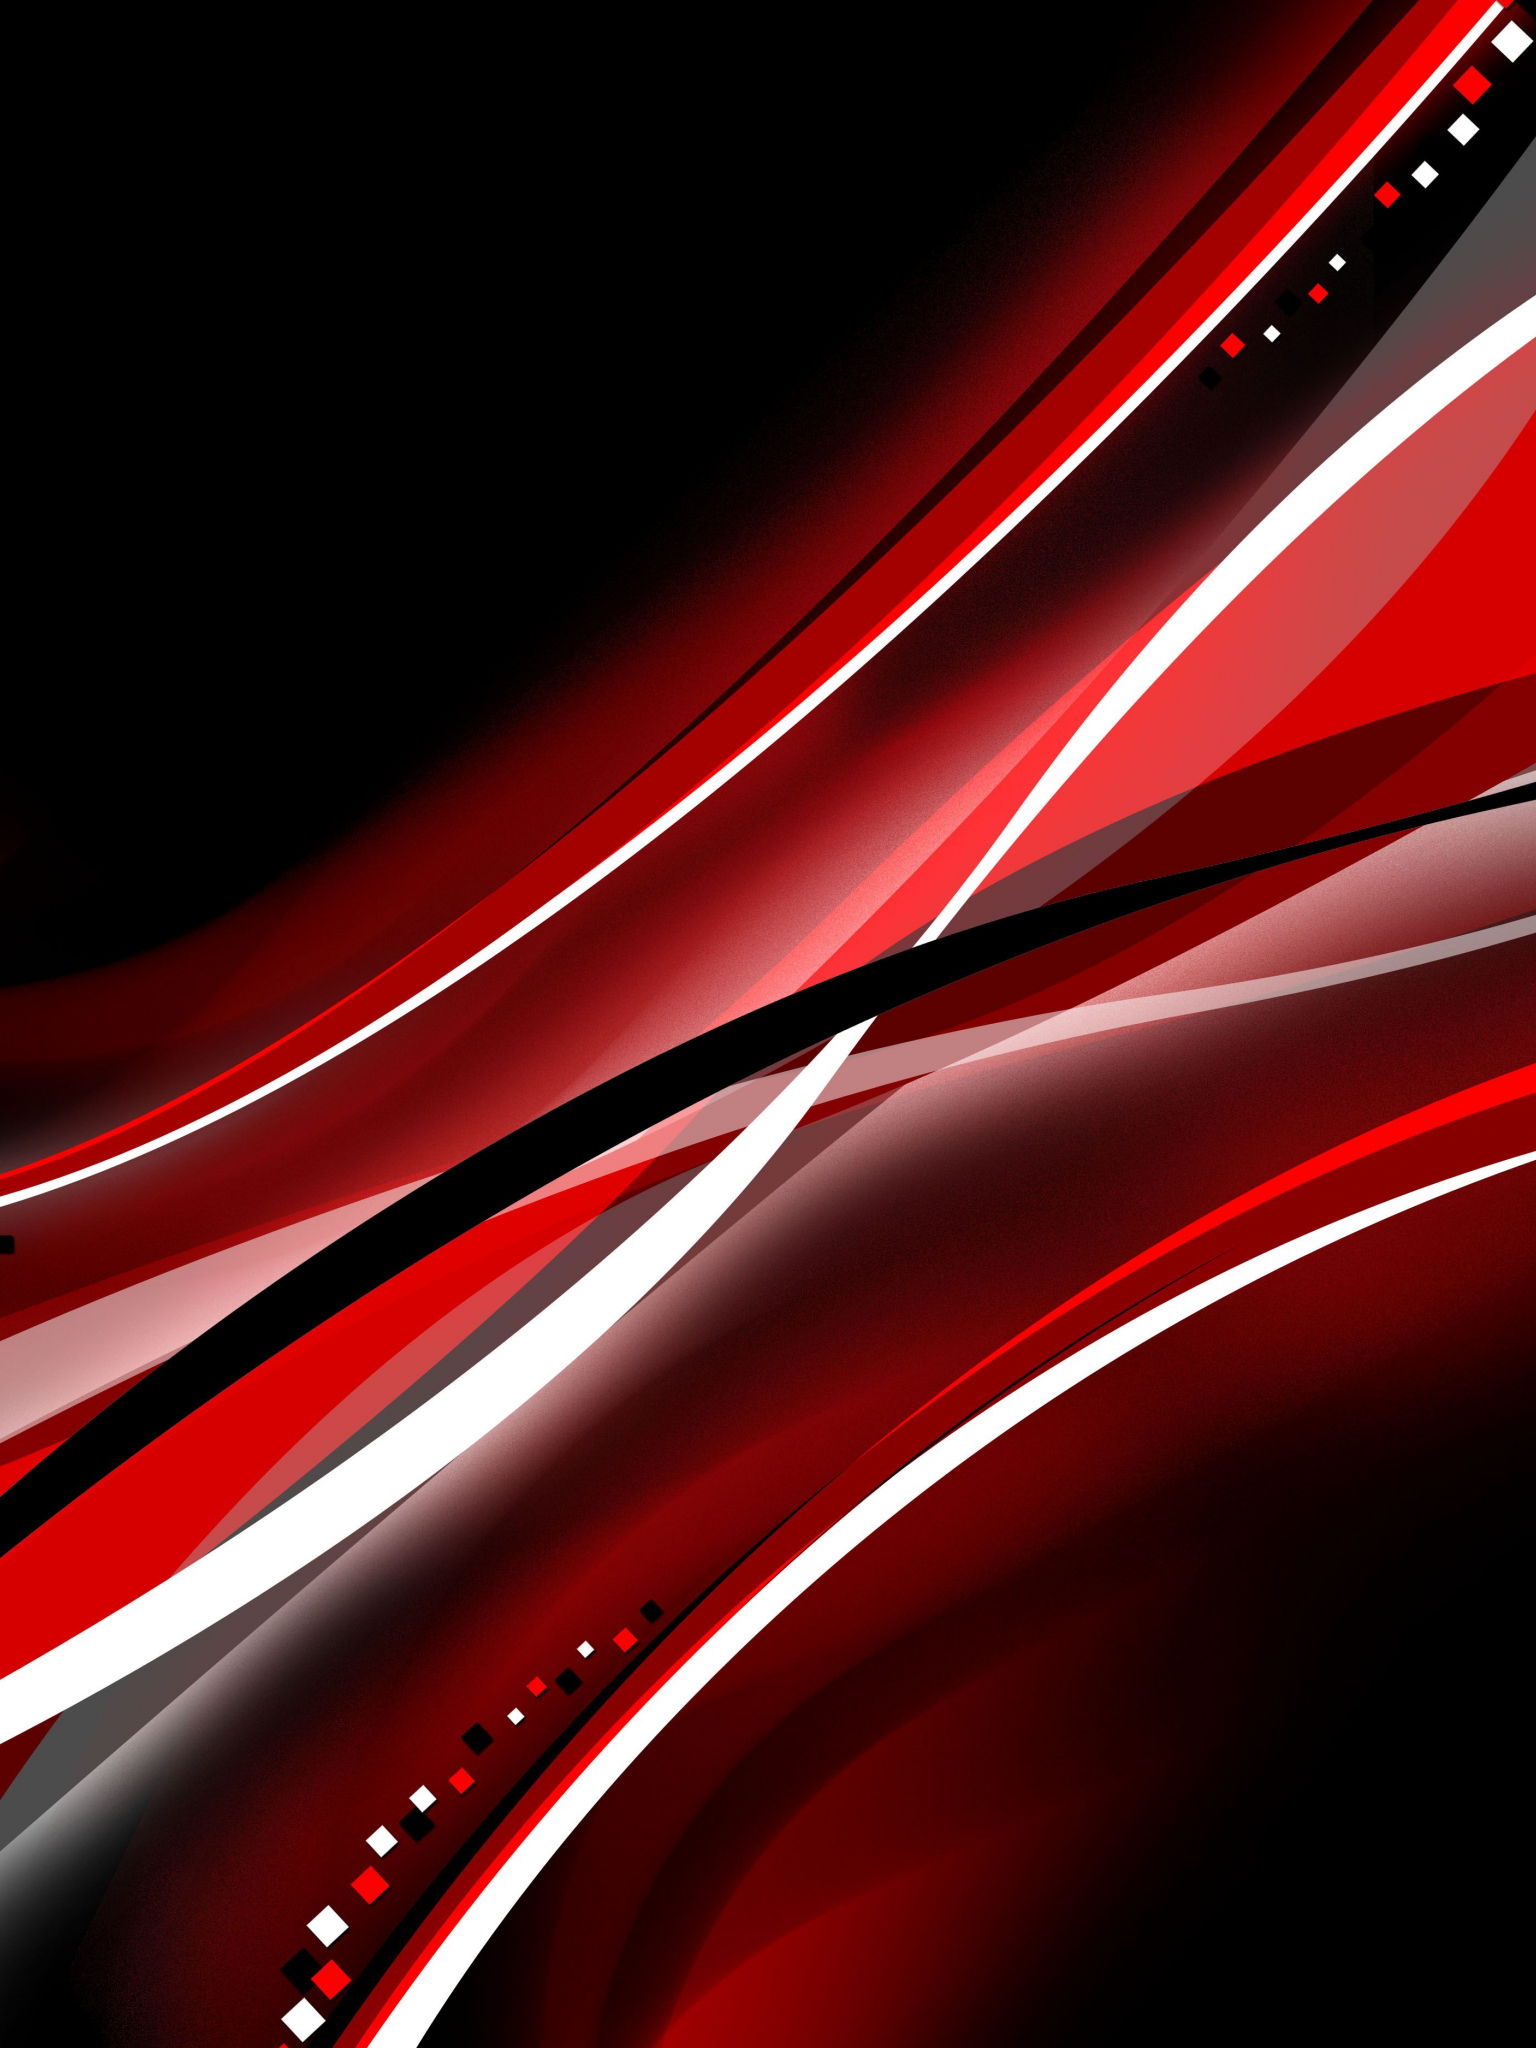 Free download Red Abstract Backgrounds 4K Download ...